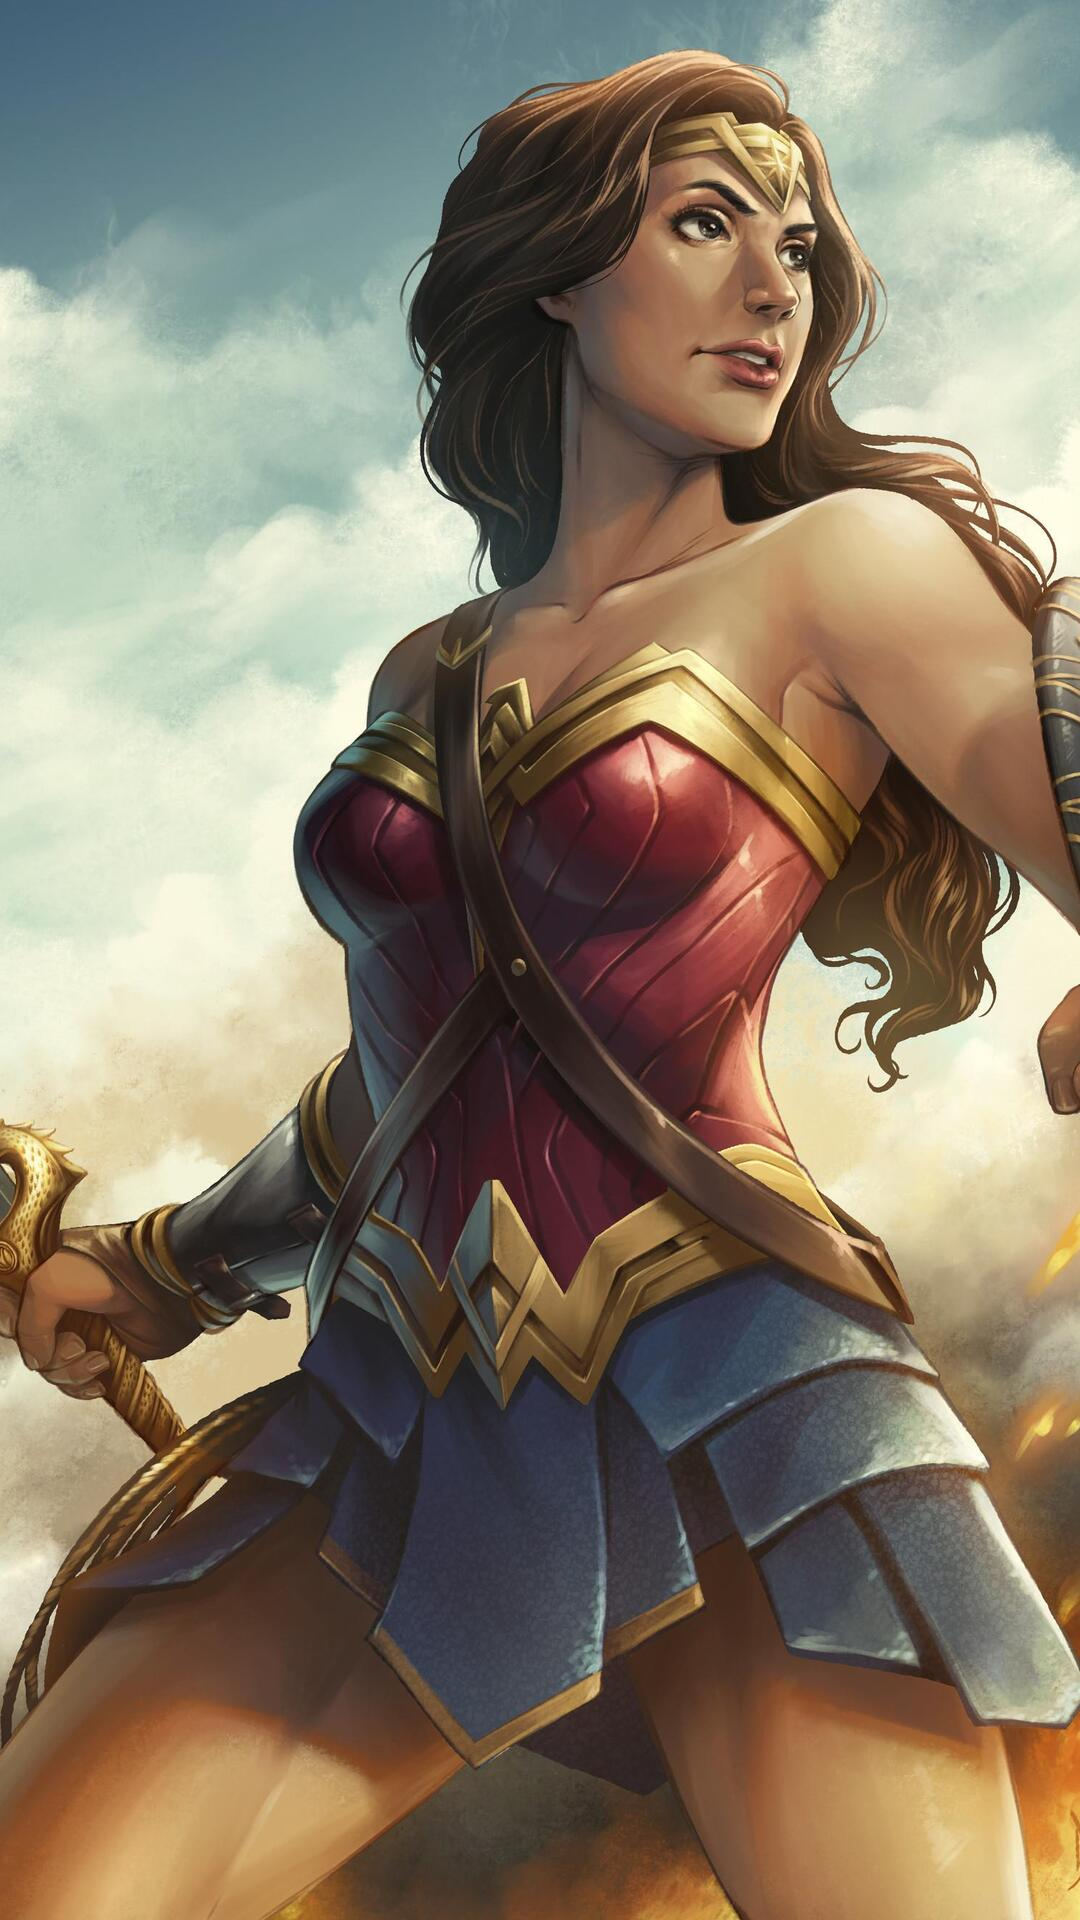 Wonder Woman Wallpapers ID 837093 Source 1080x1920 Artwork HD Iphone 7 6s 6 Plus Pixel Xl One